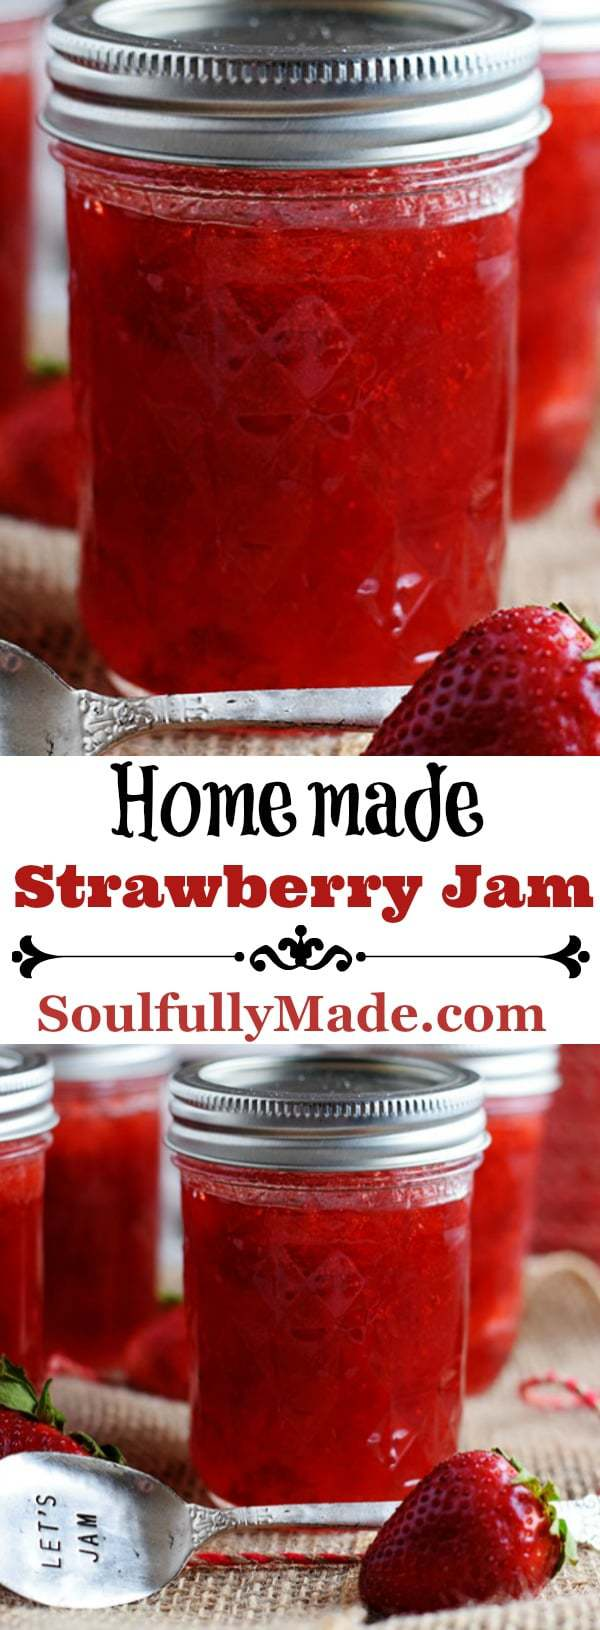 Pin Collage of Homemade Strawberry Jam